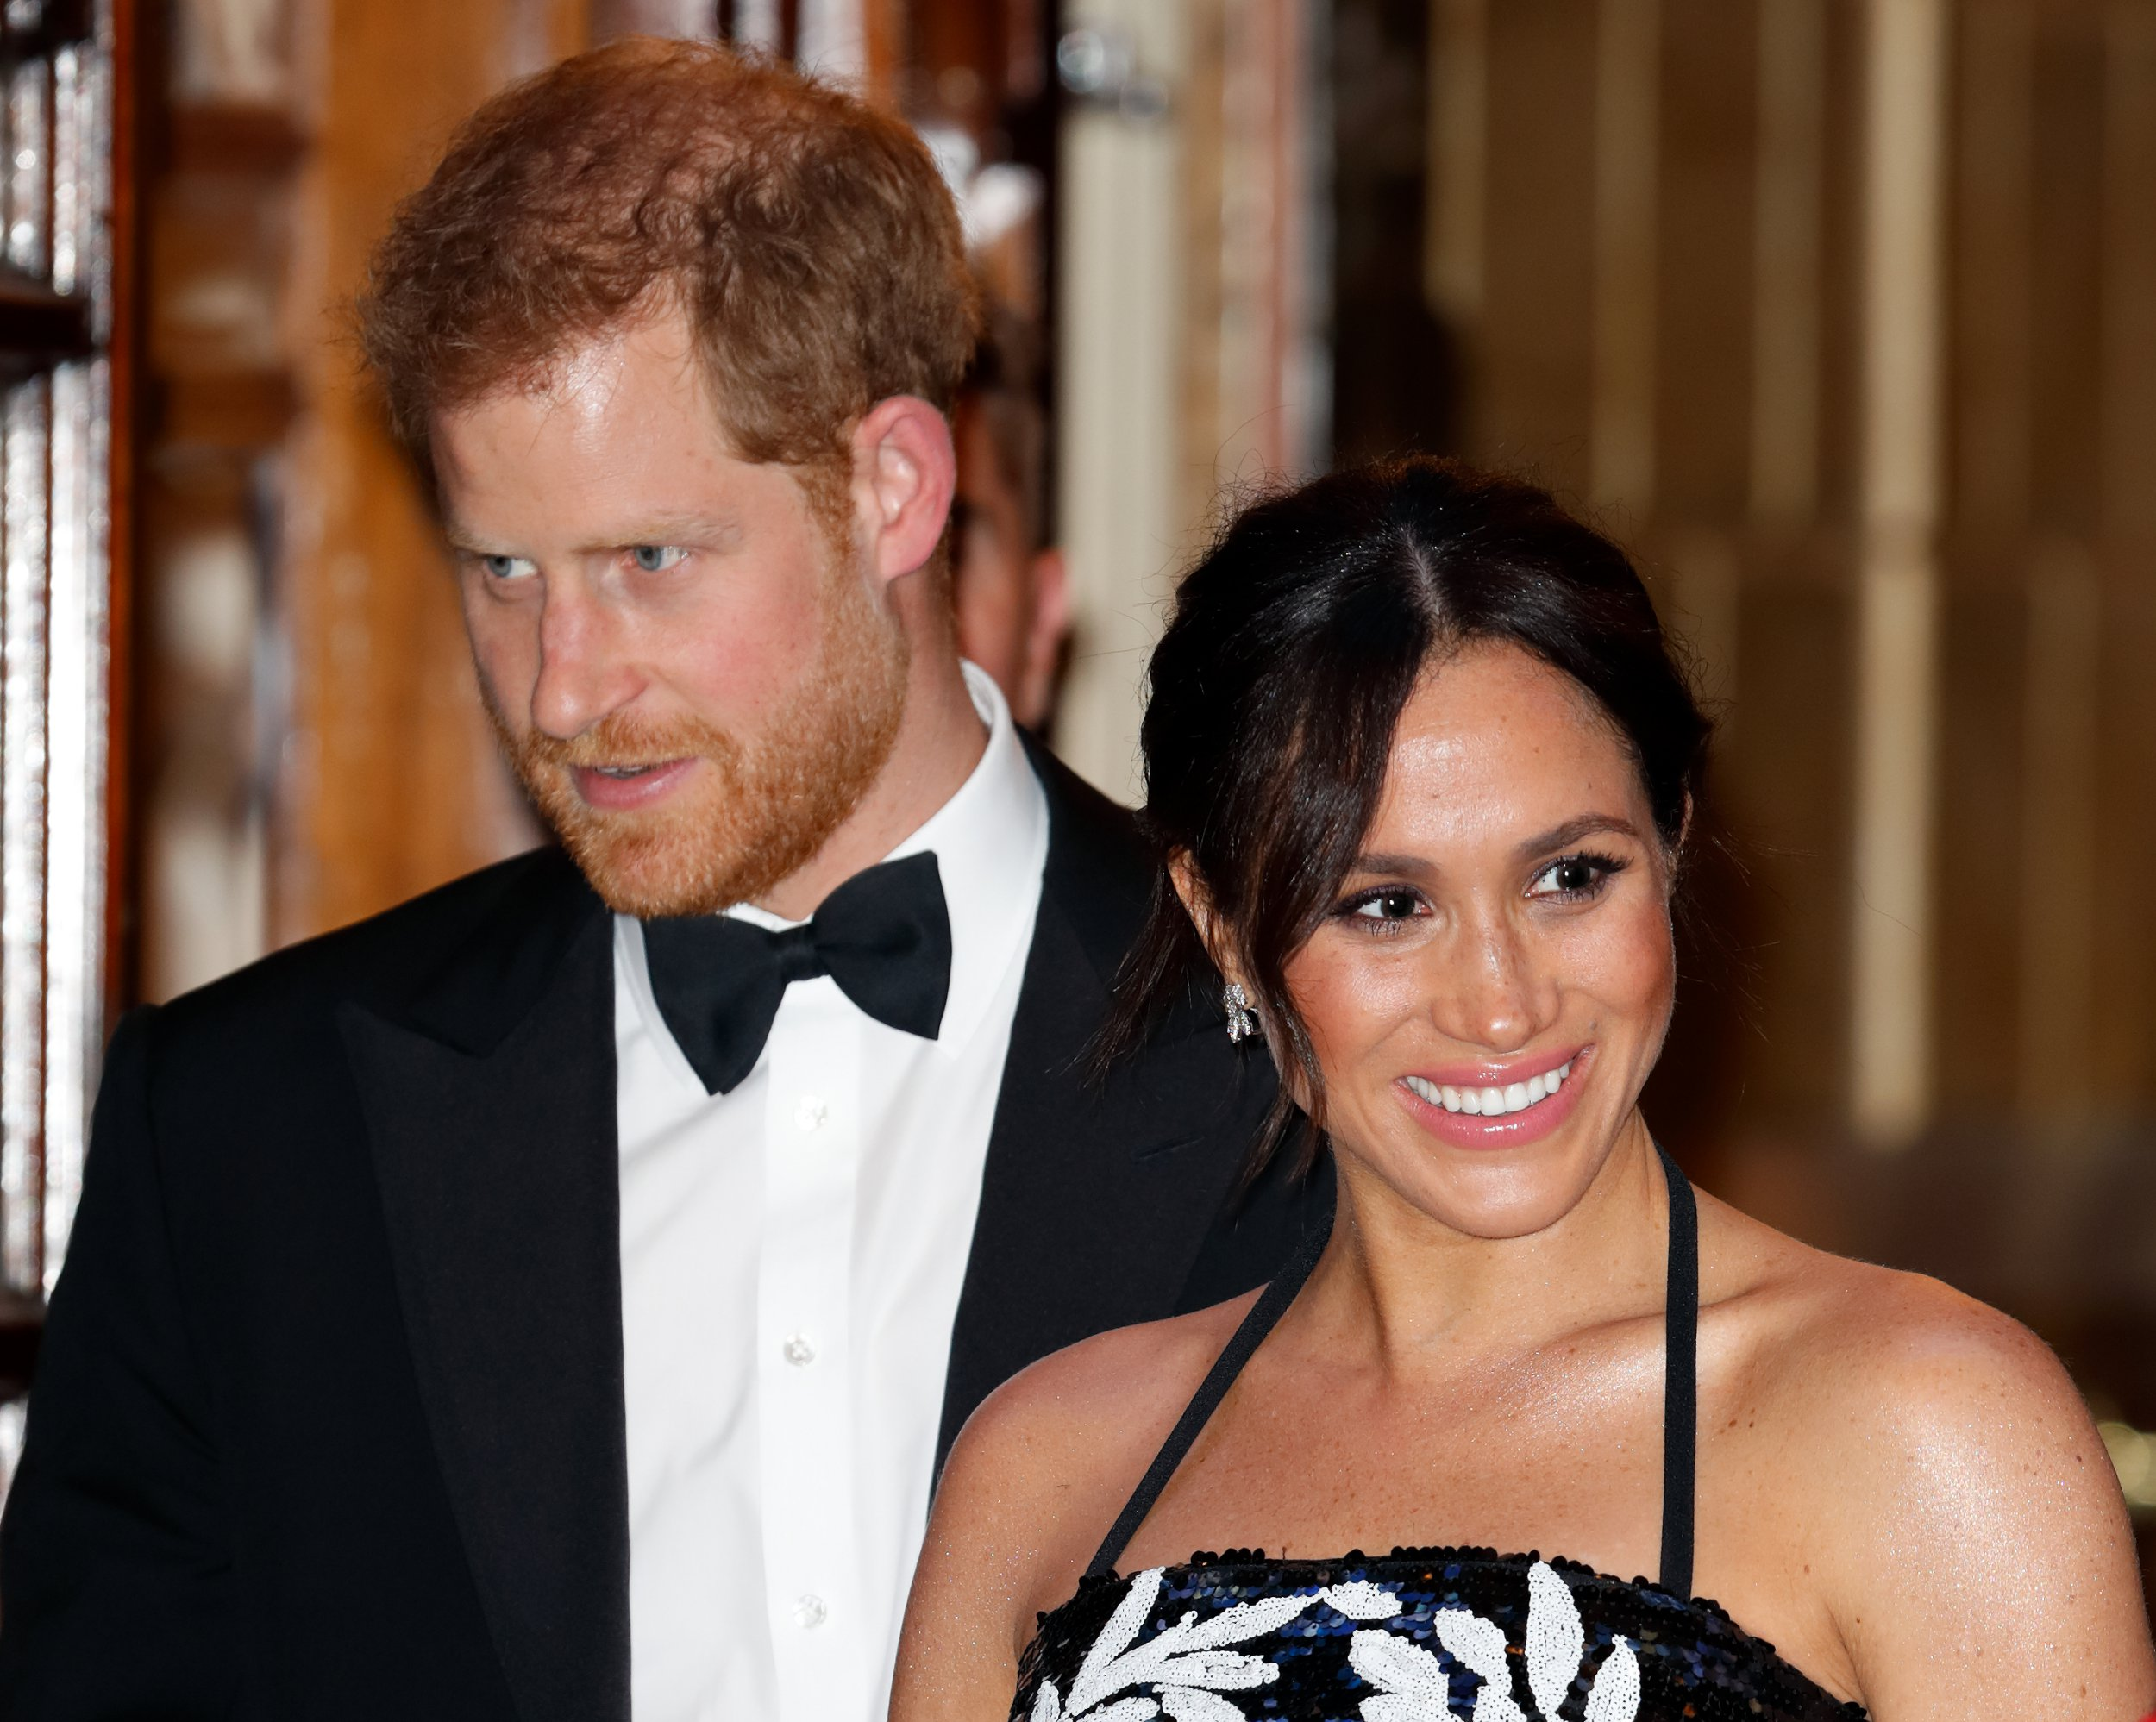 LONDON, UNITED KINGDOM - NOVEMBER 19 : (EMBARGOED FOR PUBLICATION IN UK NEWSPAPERS UNTIL 24 HOURS AFTER CREATE DATE AND TIME) Meghan, Duchess of Sussex and Prince Harry, Duke of Sussex attend The Royal Variety Performance 2018 at the London Palladium on November 19, 2018 in London, England. (Photo by Max Mumby/Indigo/Getty Images)